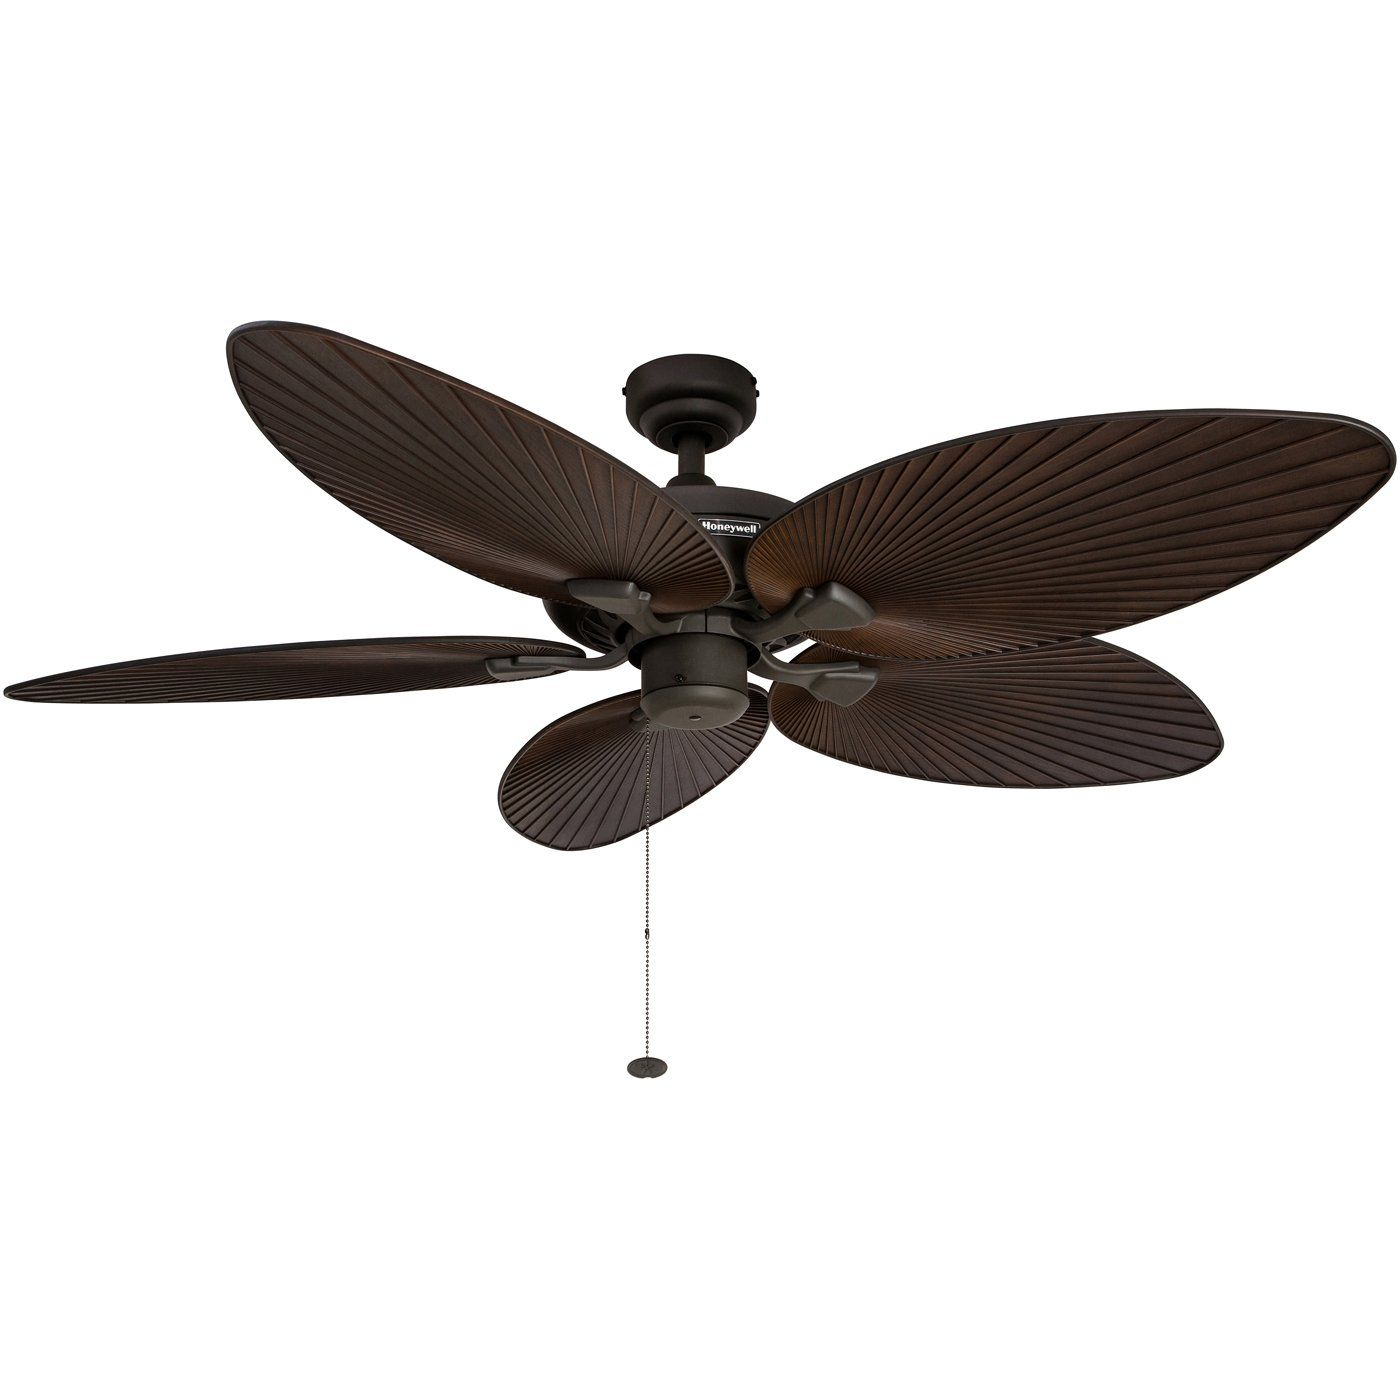 Honeywell palm island 52 inch tropical ceiling fan five palm leaf honeywell palm island 52 inch tropical ceiling fan five palm leaf blades indoor aloadofball Image collections